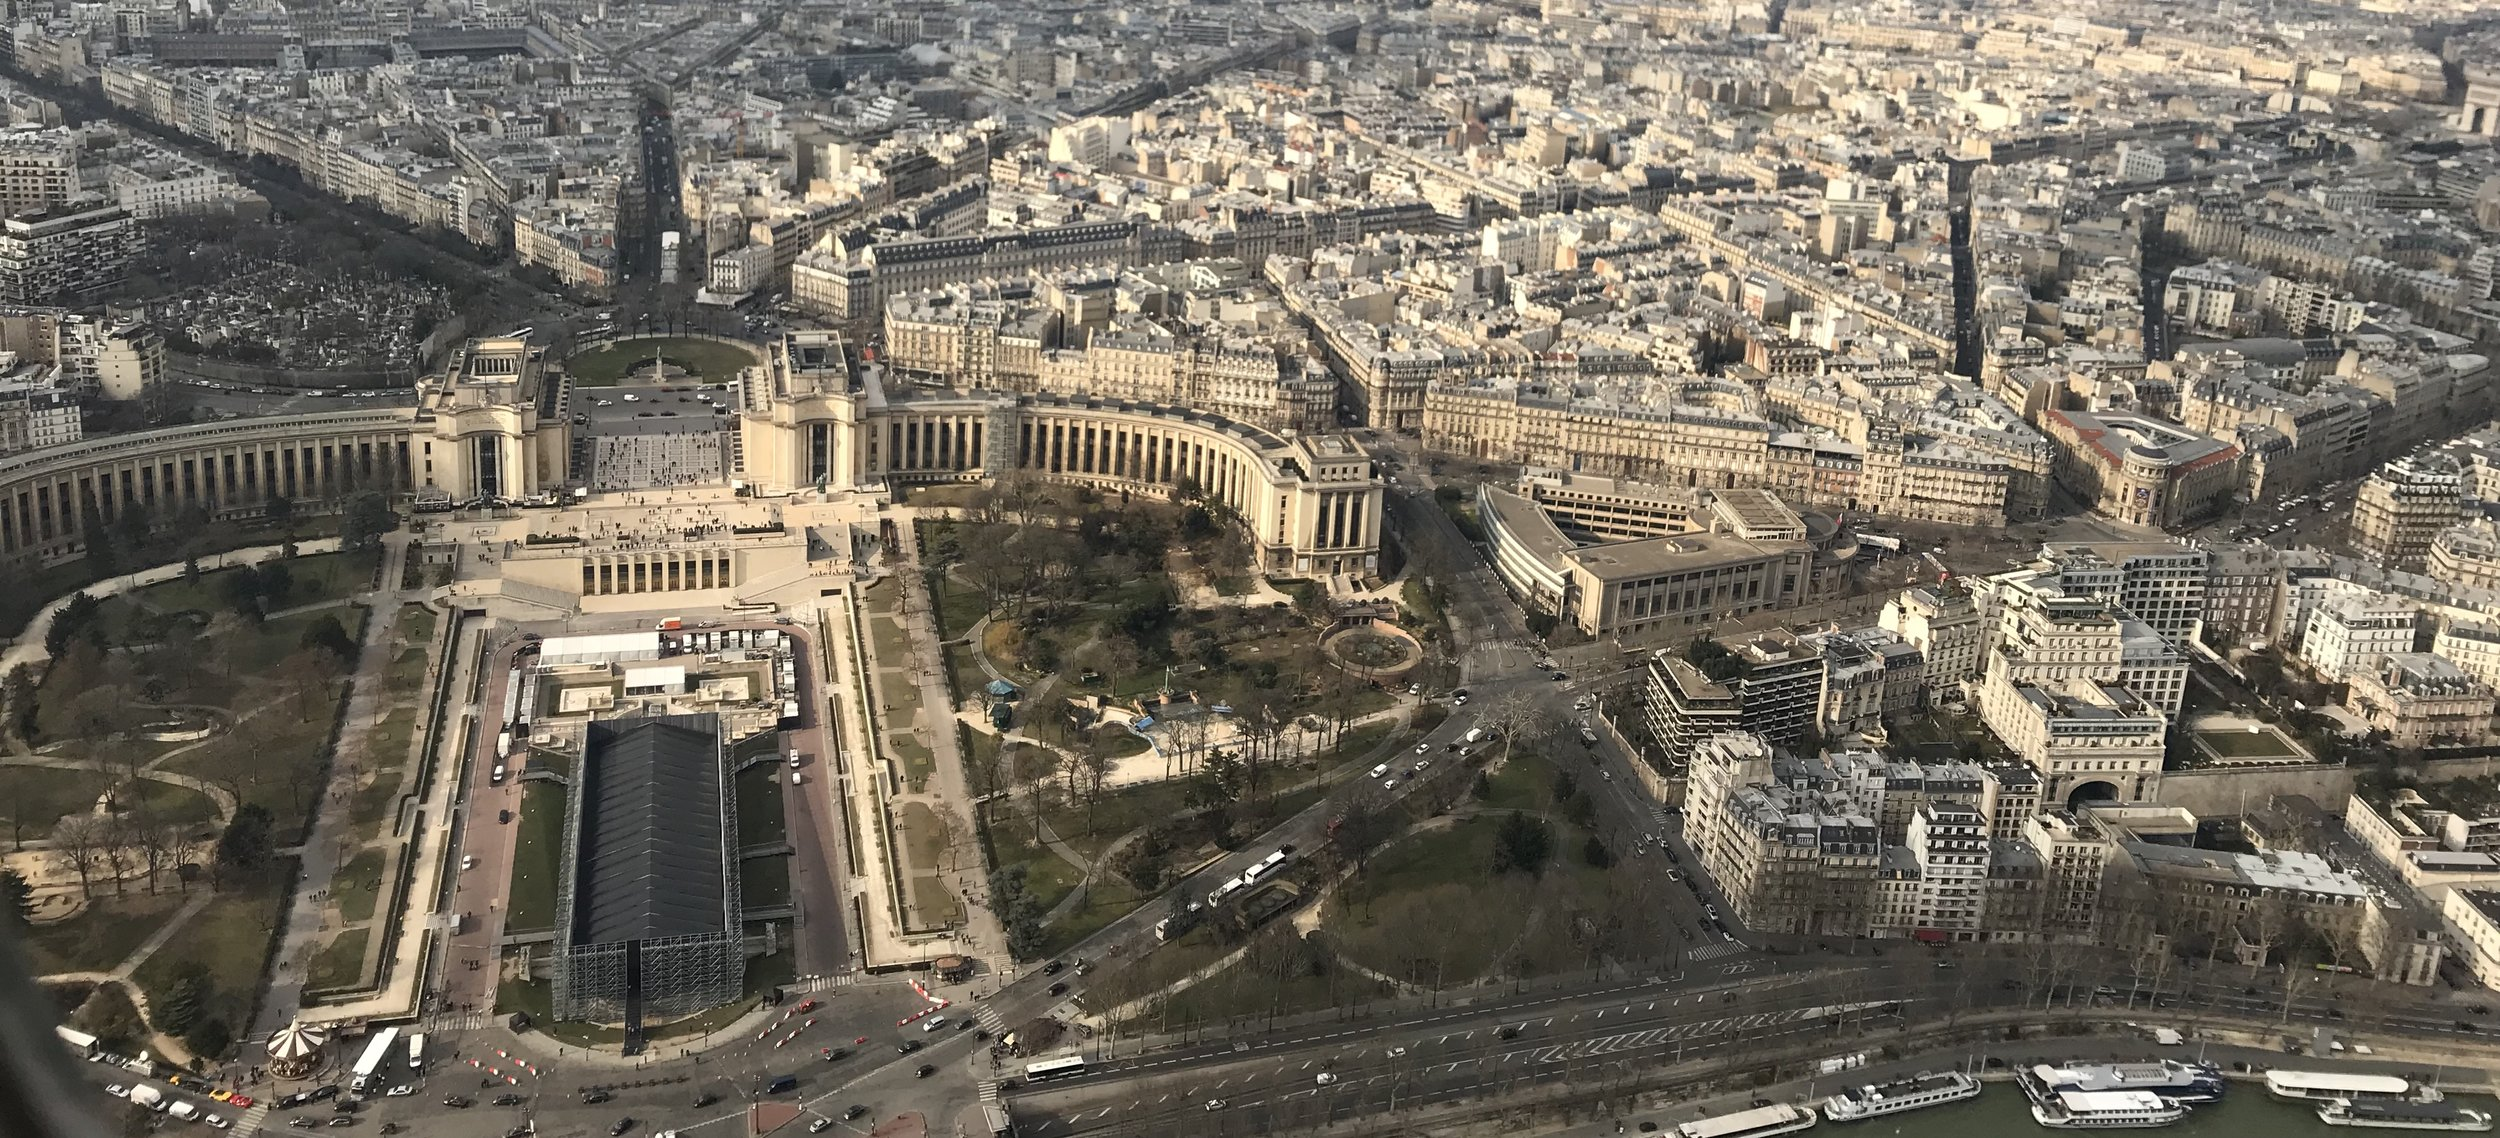 Image: An aerial view of the streets of Paris, showing the famous system that was deliberately designed by Haussmann during Napoléon III's era to alleviate overcrowding and bring order to the city center.